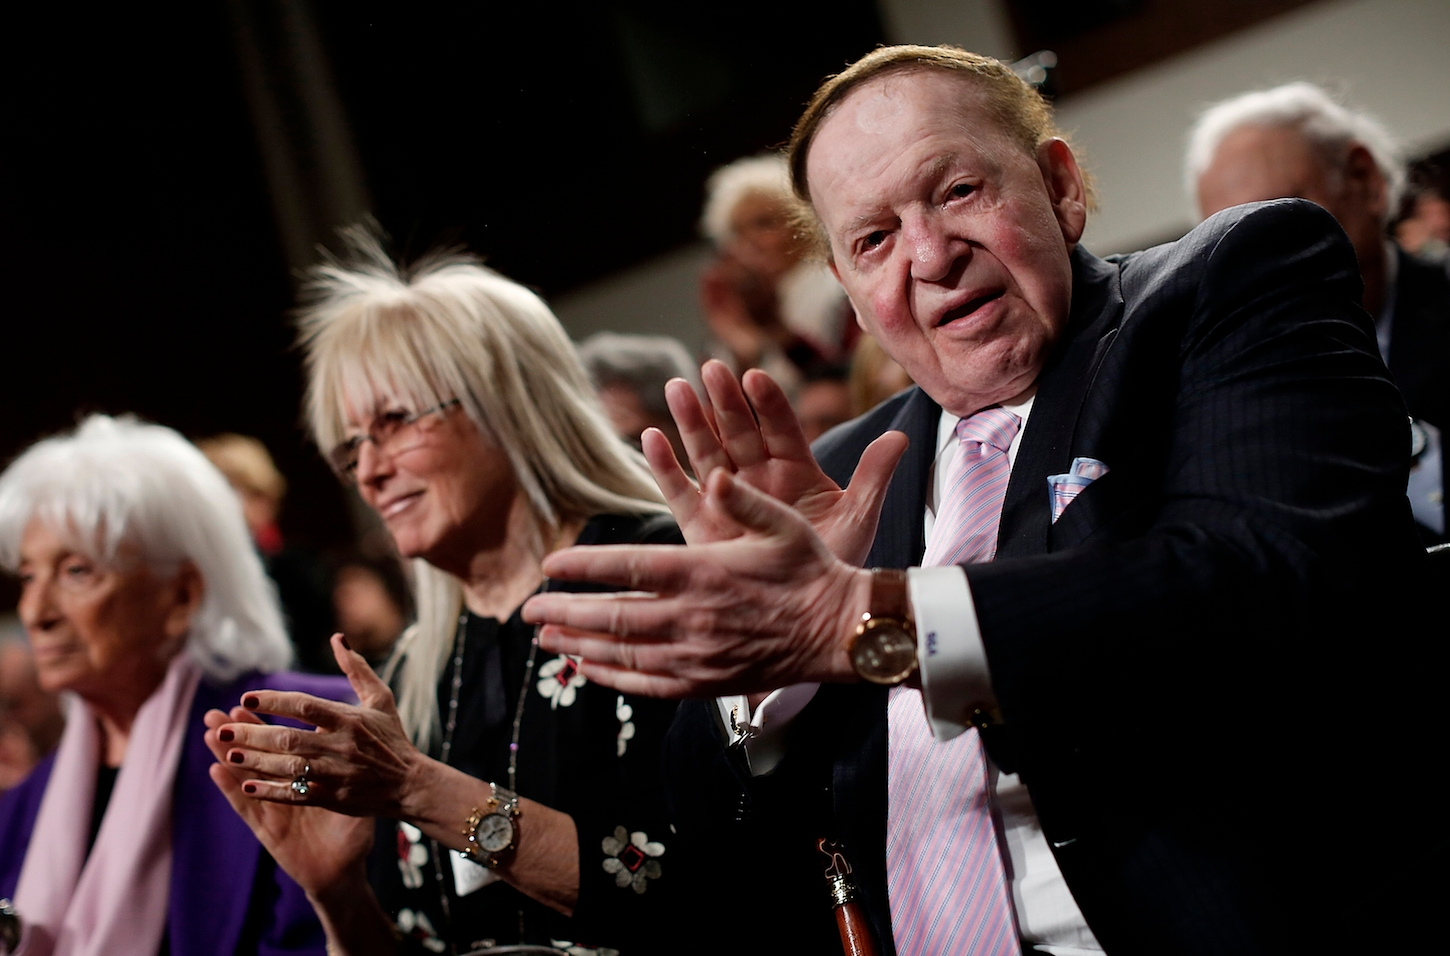 Sheldon Adelson, right, and his wife Miriam Adelson gave $40 million to the failed presidential candidacy of Newt Gingrich in 2012. The Adelsons have declined to support a Republican candidate so far in 2016. (Win McNamee/Getty Images)